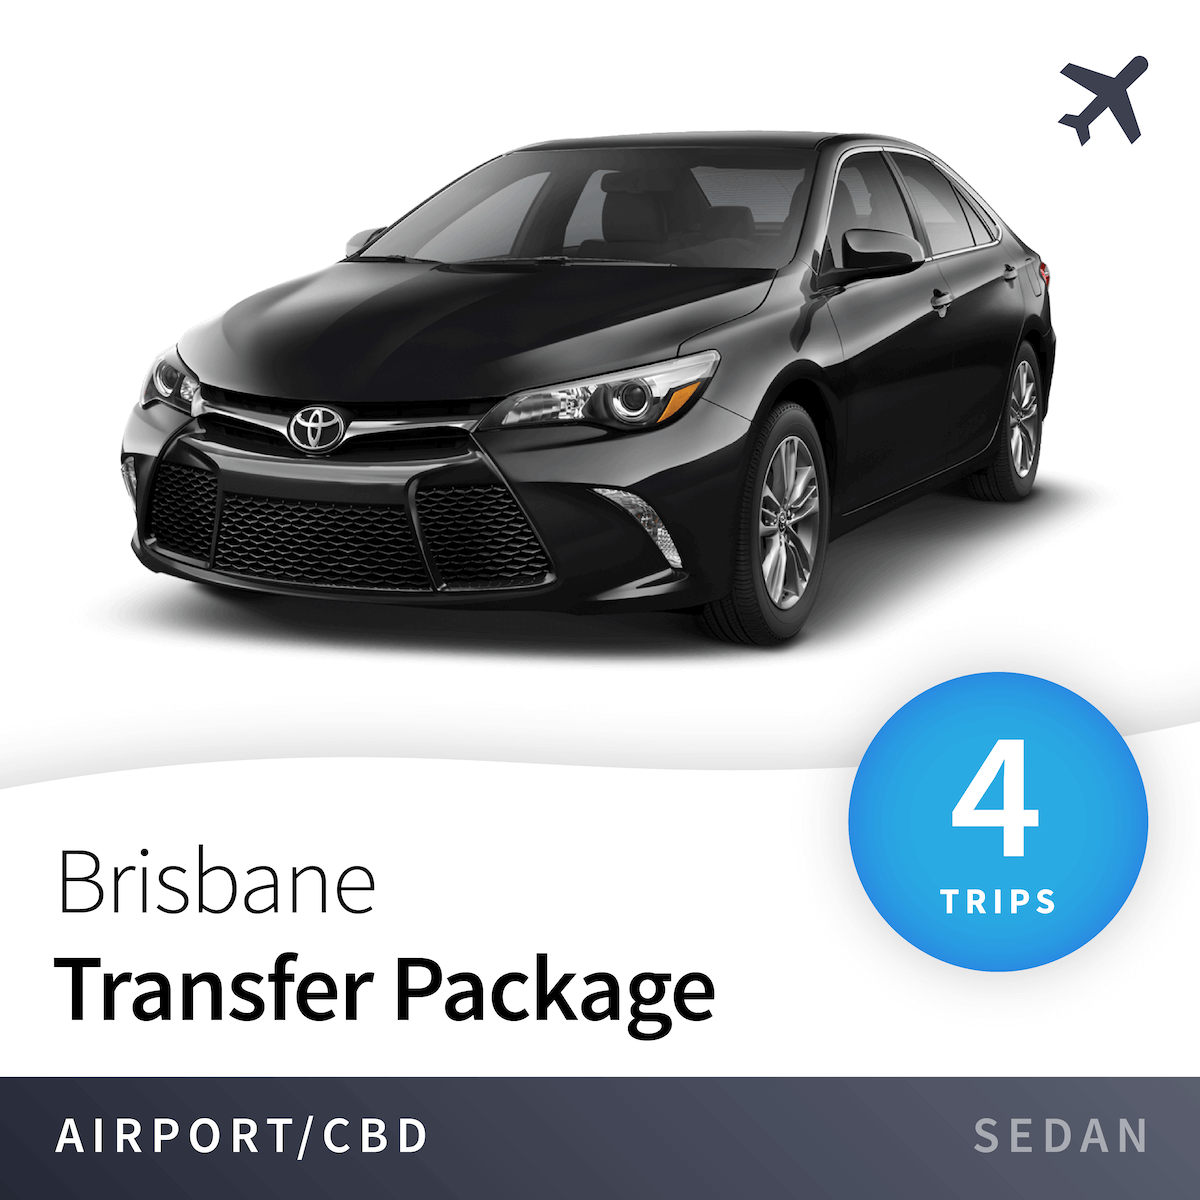 Brisbane Airport Transfer Package - Sedan (4 Trips) 10